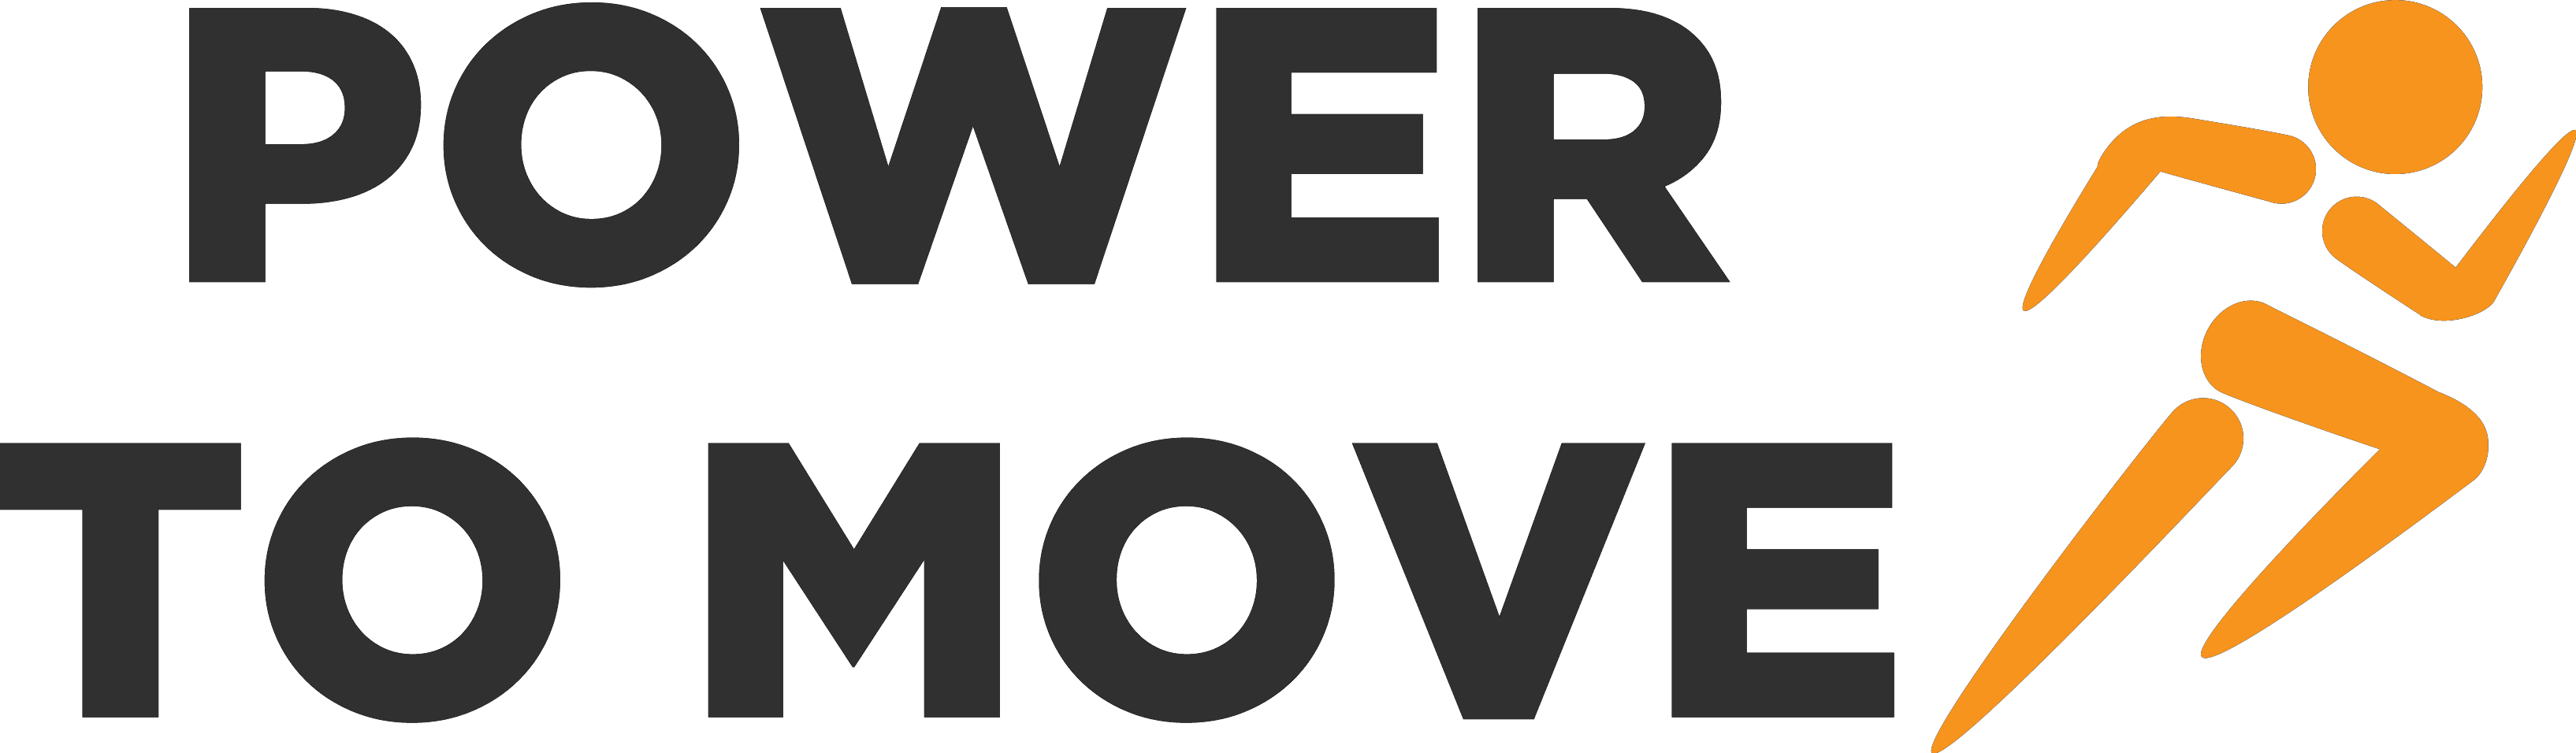 POWER TO MOVE